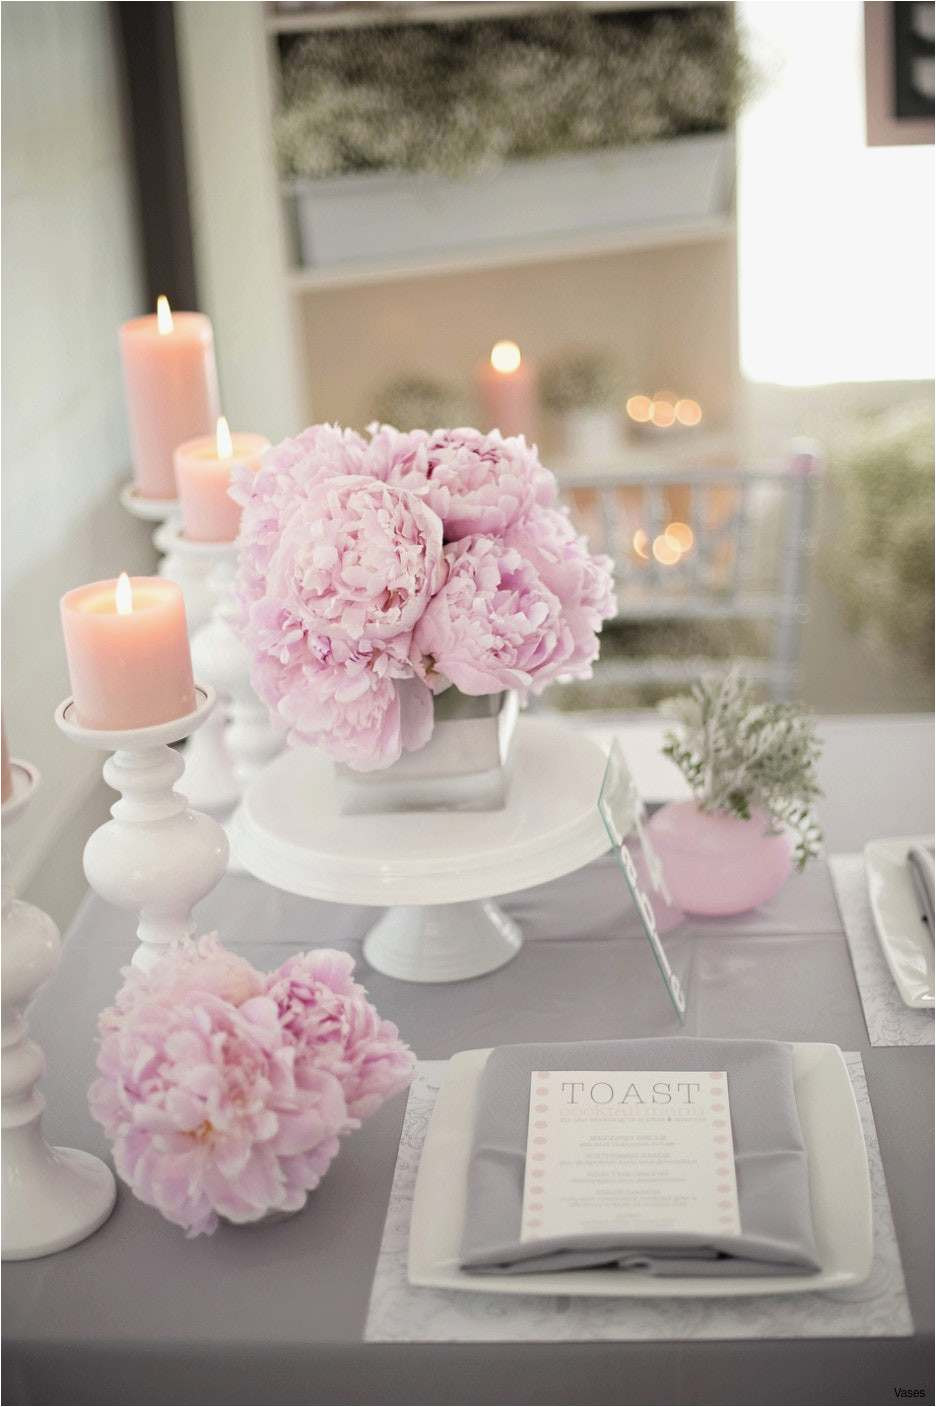 tall floor vase decoration ideas of wedding items awesome dsc h vases square centerpiece dsc i 0d cheap throughout wedding items beautiful dsc h vases square centerpiece dsc i 0d cheap tall design ideas photo